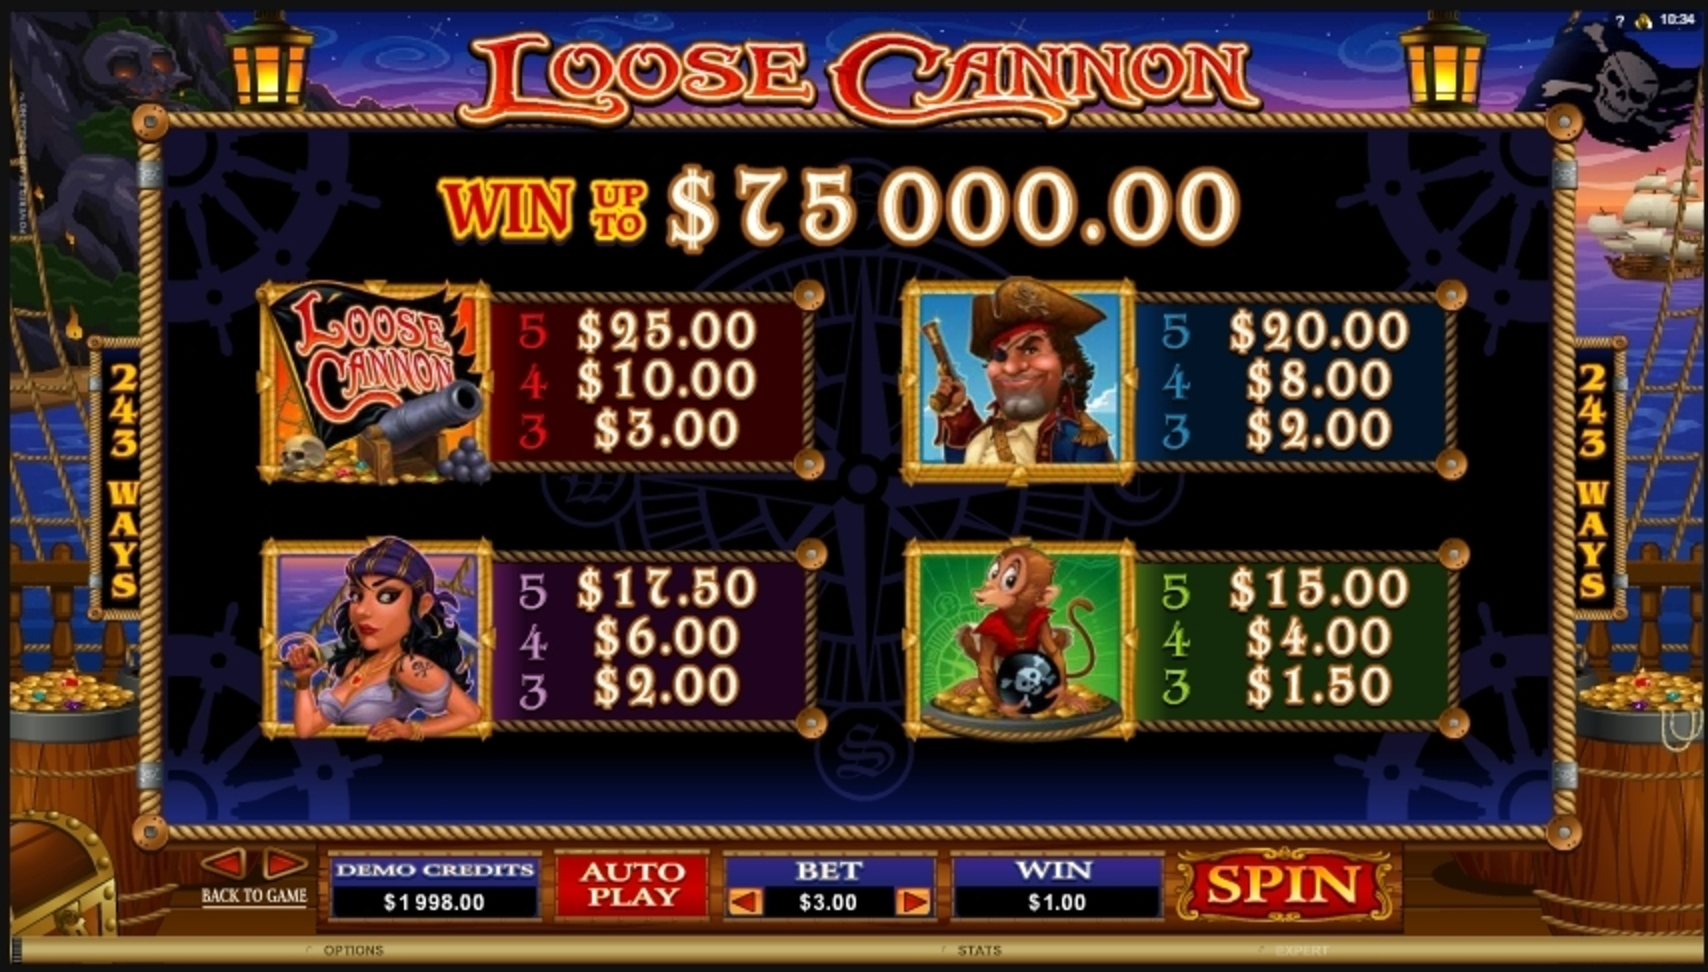 Info of Loose Cannon Slot Game by Microgaming